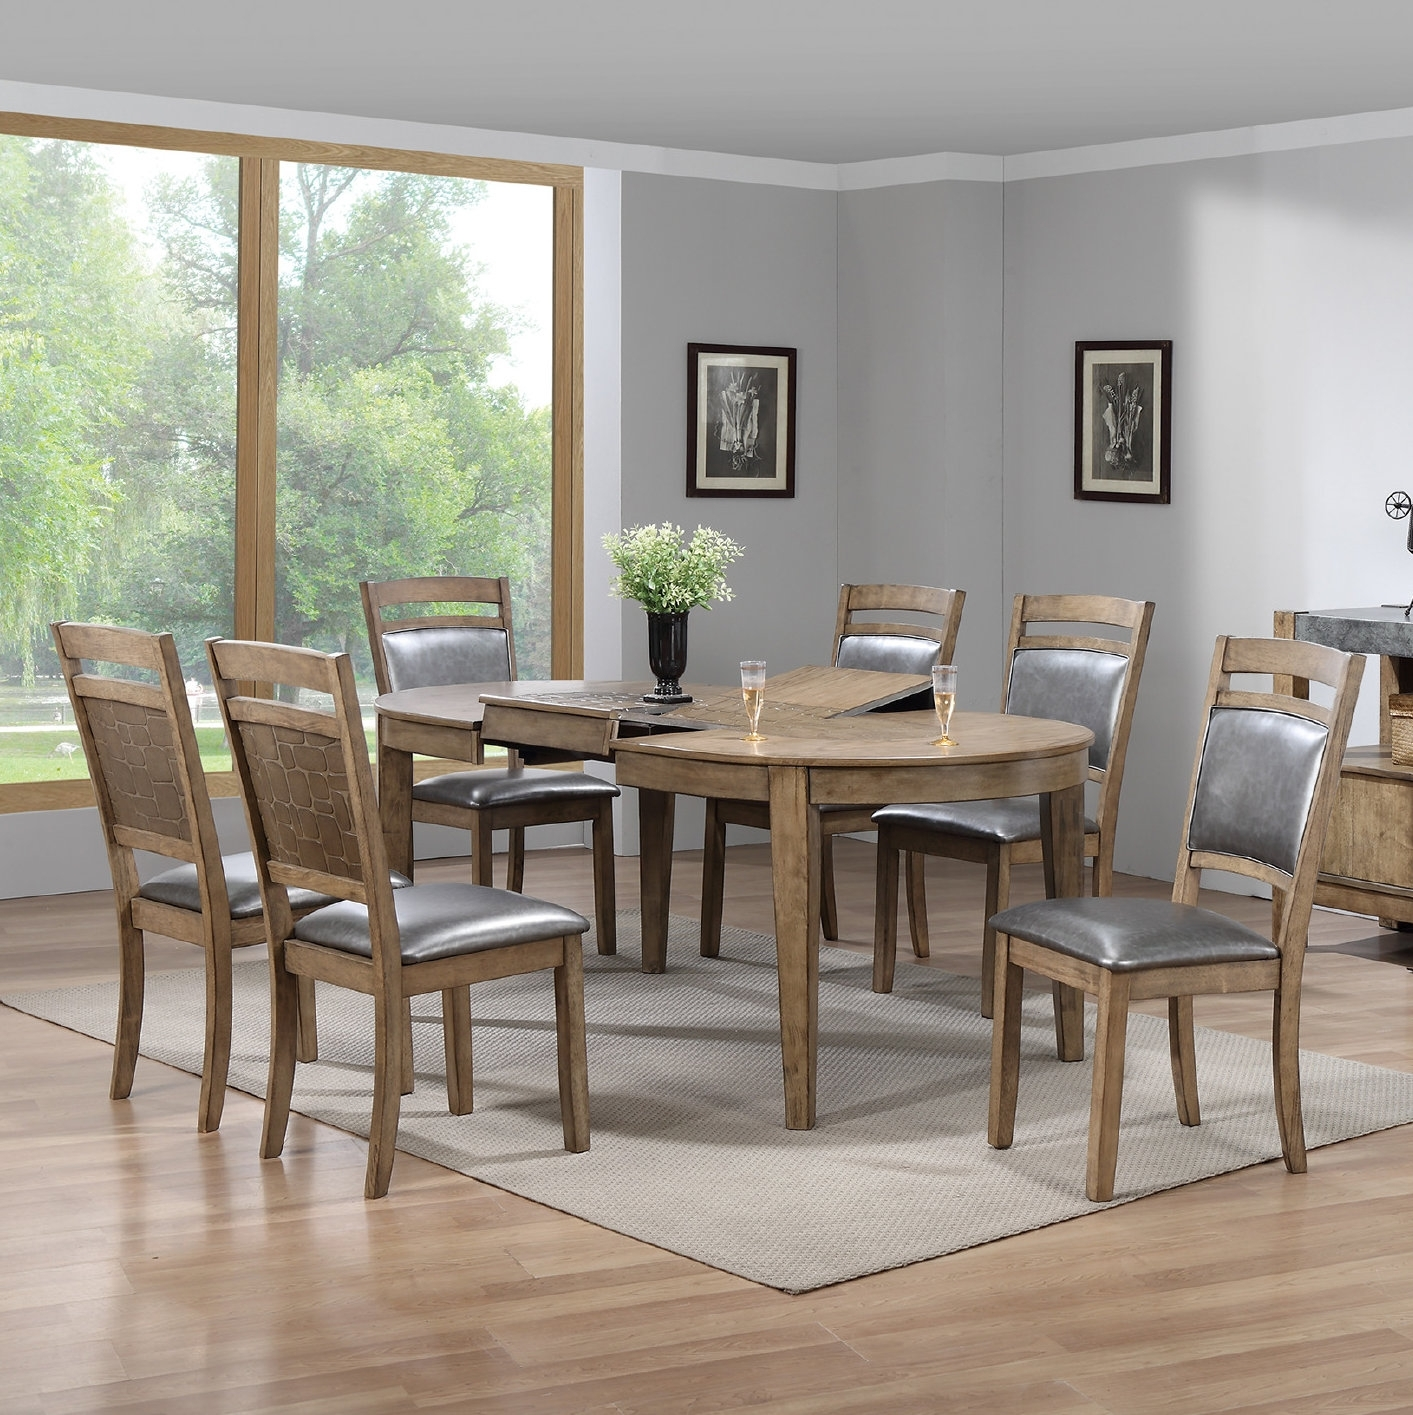 Gracie Oaks Warthen 7 Piece Dining Set | Wayfair Inside Recent Caira Black 7 Piece Dining Sets With Upholstered Side Chairs (Image 10 of 20)